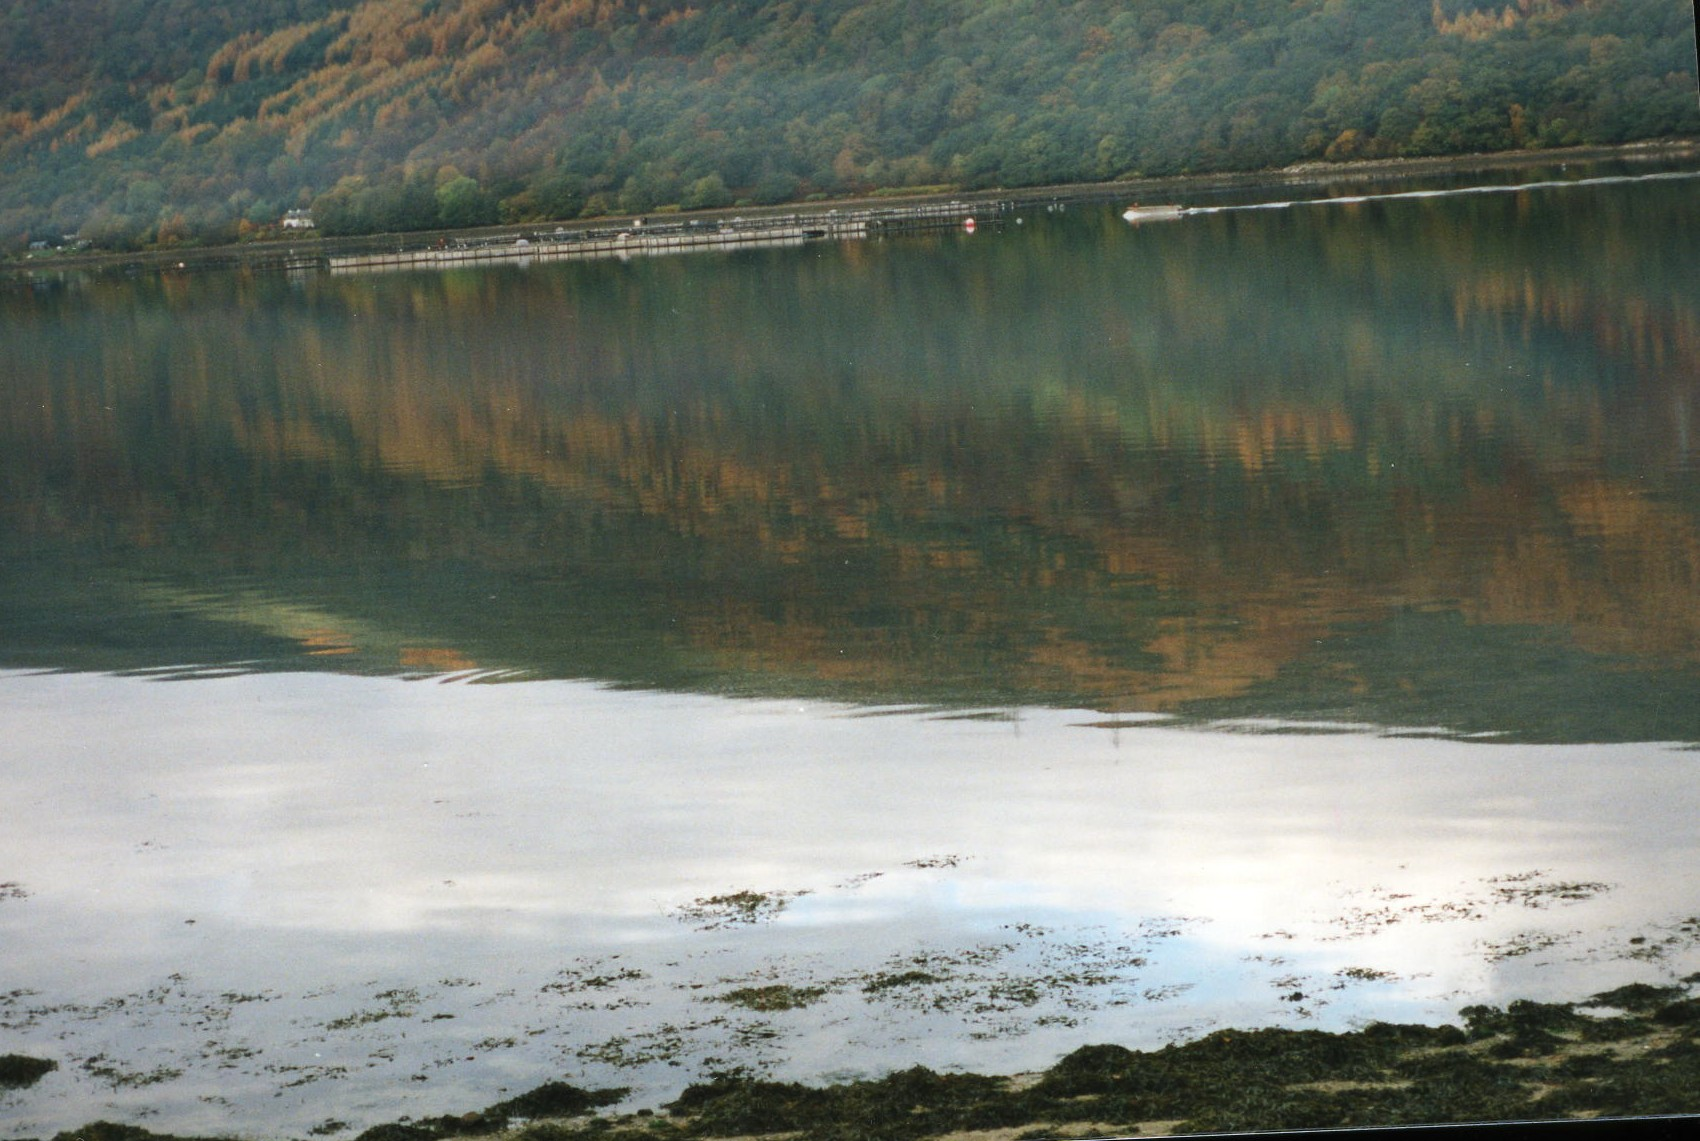 Cages on Loch Fyne